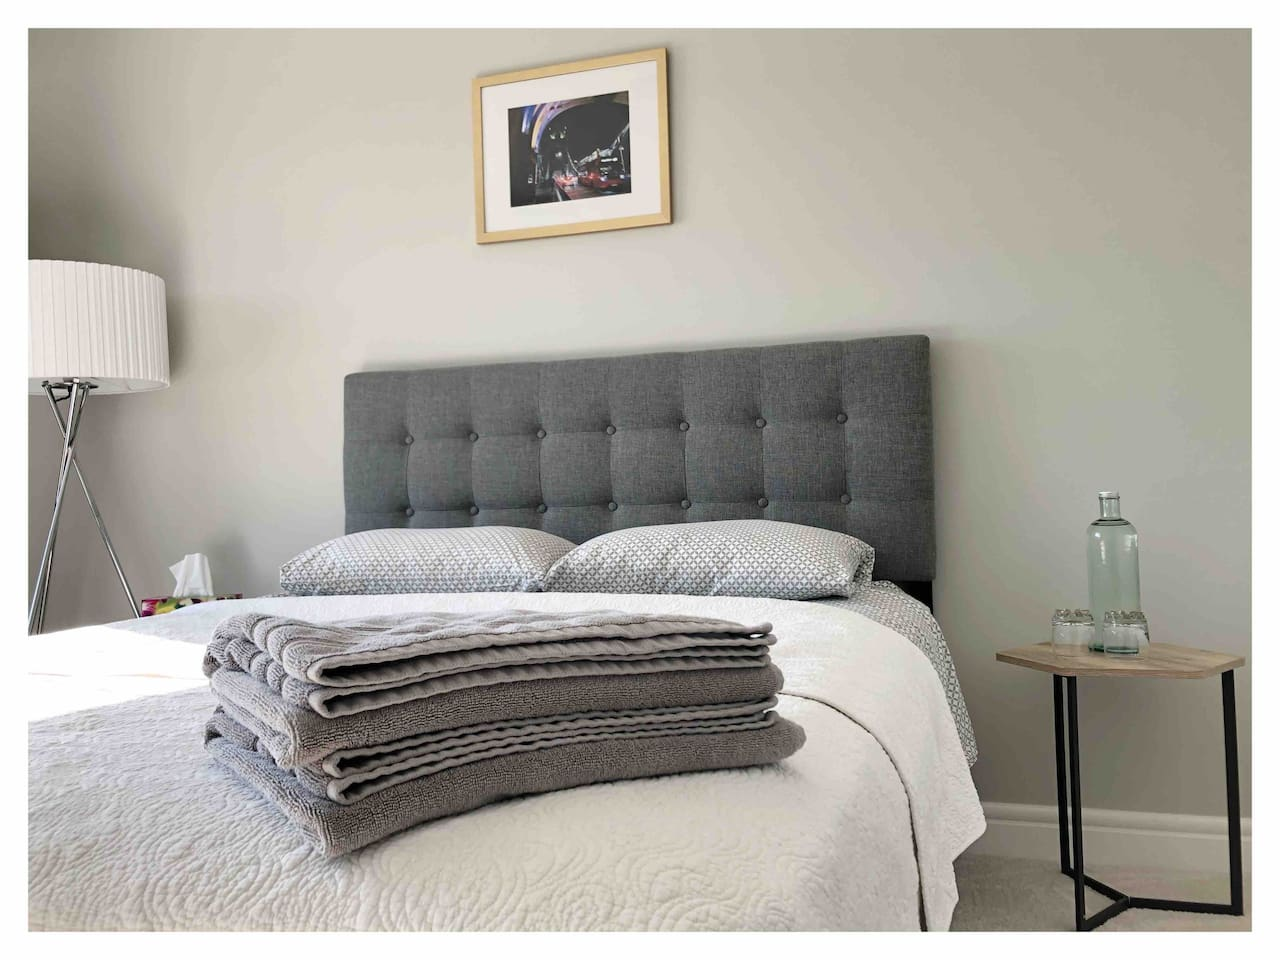 Our B&B includes clean linen, towels and fresh water.